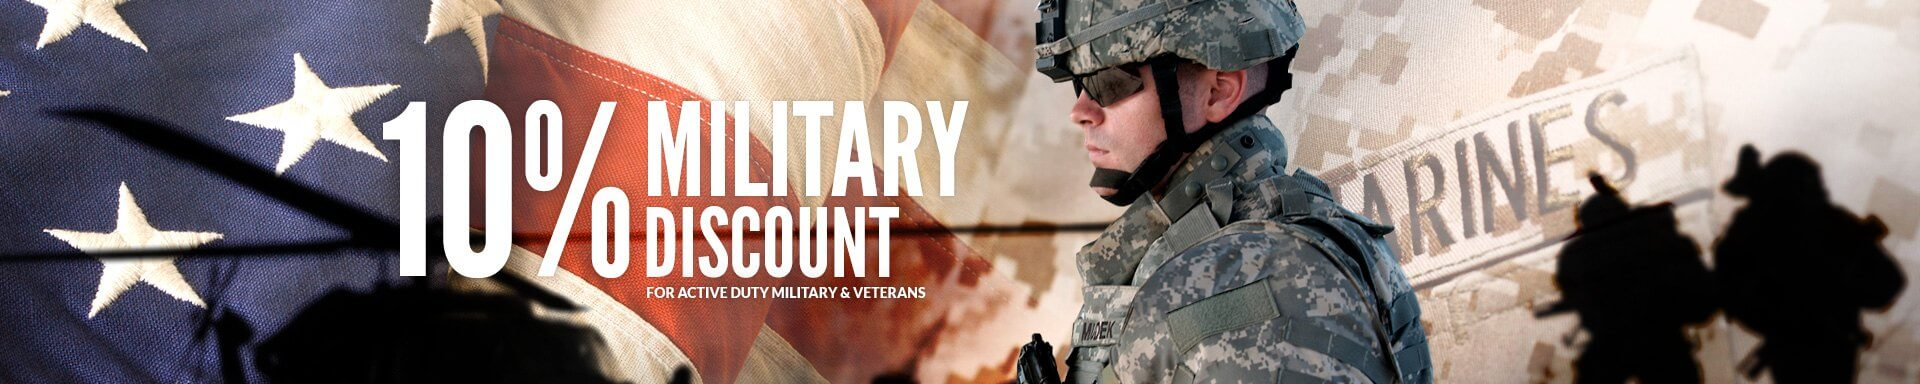 Carid Military Discounts - First Responder Discounts